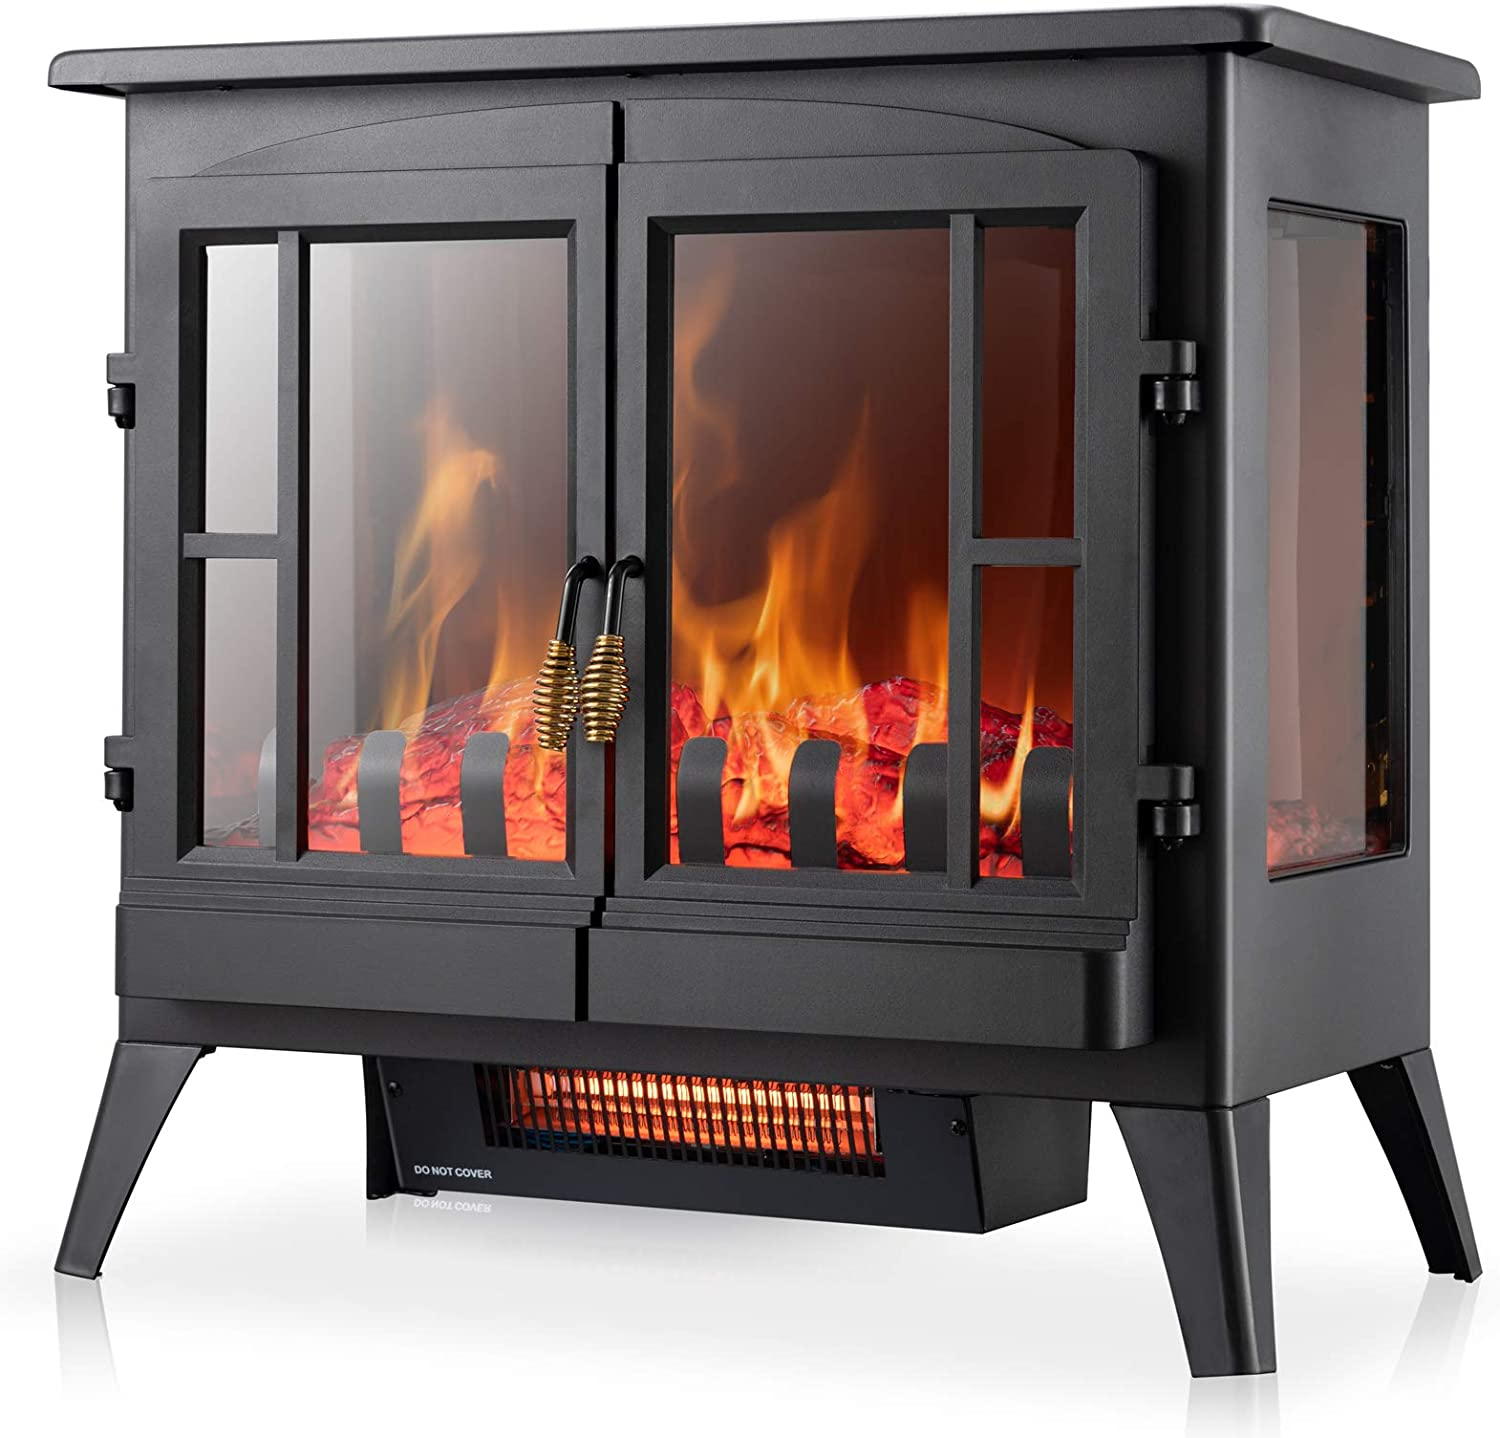 Xbeauty Electric Fireplace Stove Freestanding Fireplace Heater With Realistic Flame Indoor Electric Stove Heater Portable Infrared Thermostat Overheating Safety System 1000w 1500w 23 Inch Amazon Ca Home Kitchen